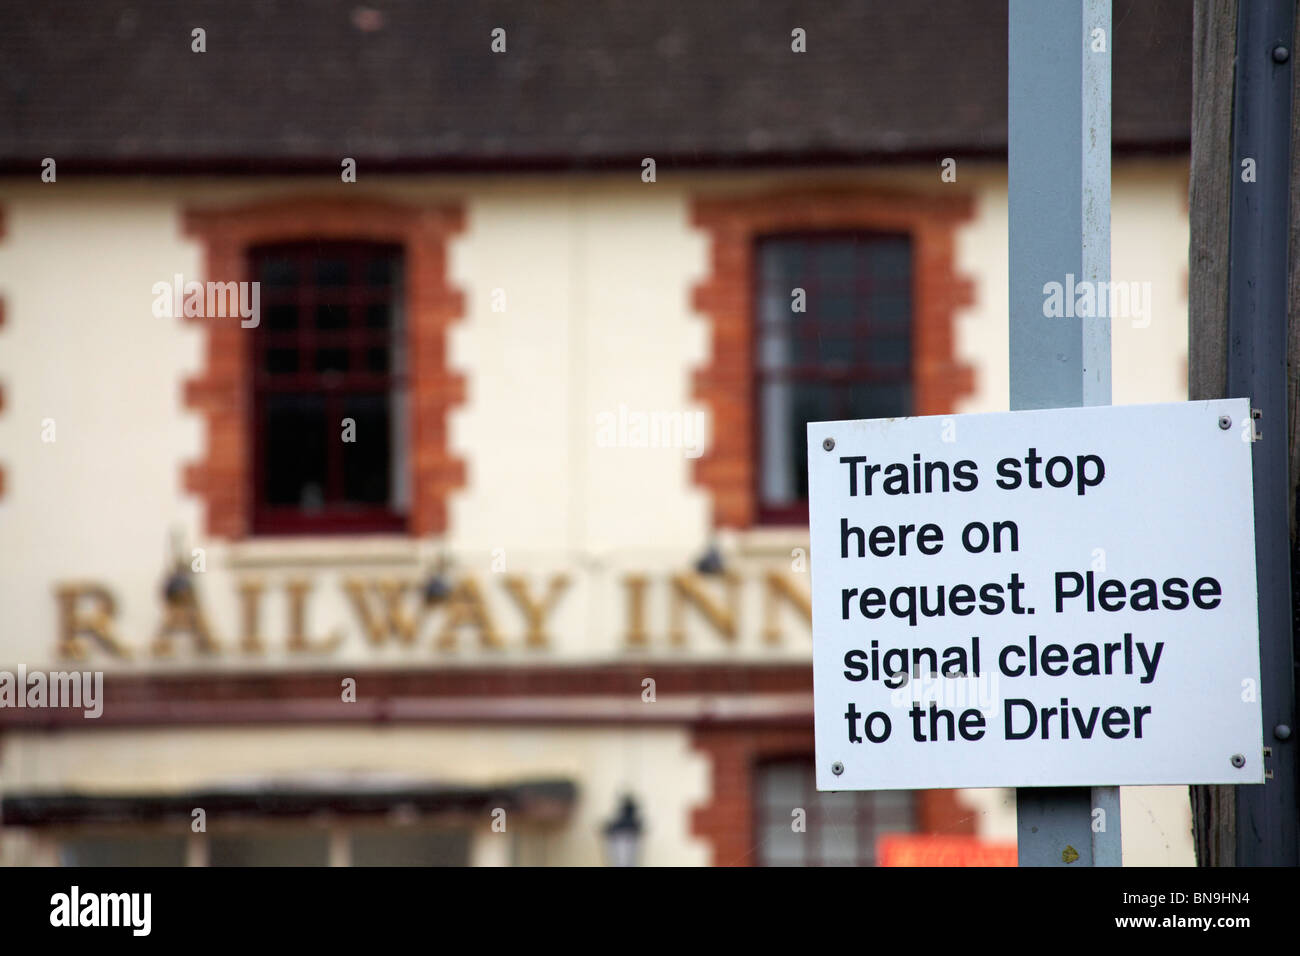 Trains stop here on request. Please signal clearly to the driver sign at Yetminster station with out of focus Railway - Stock Image